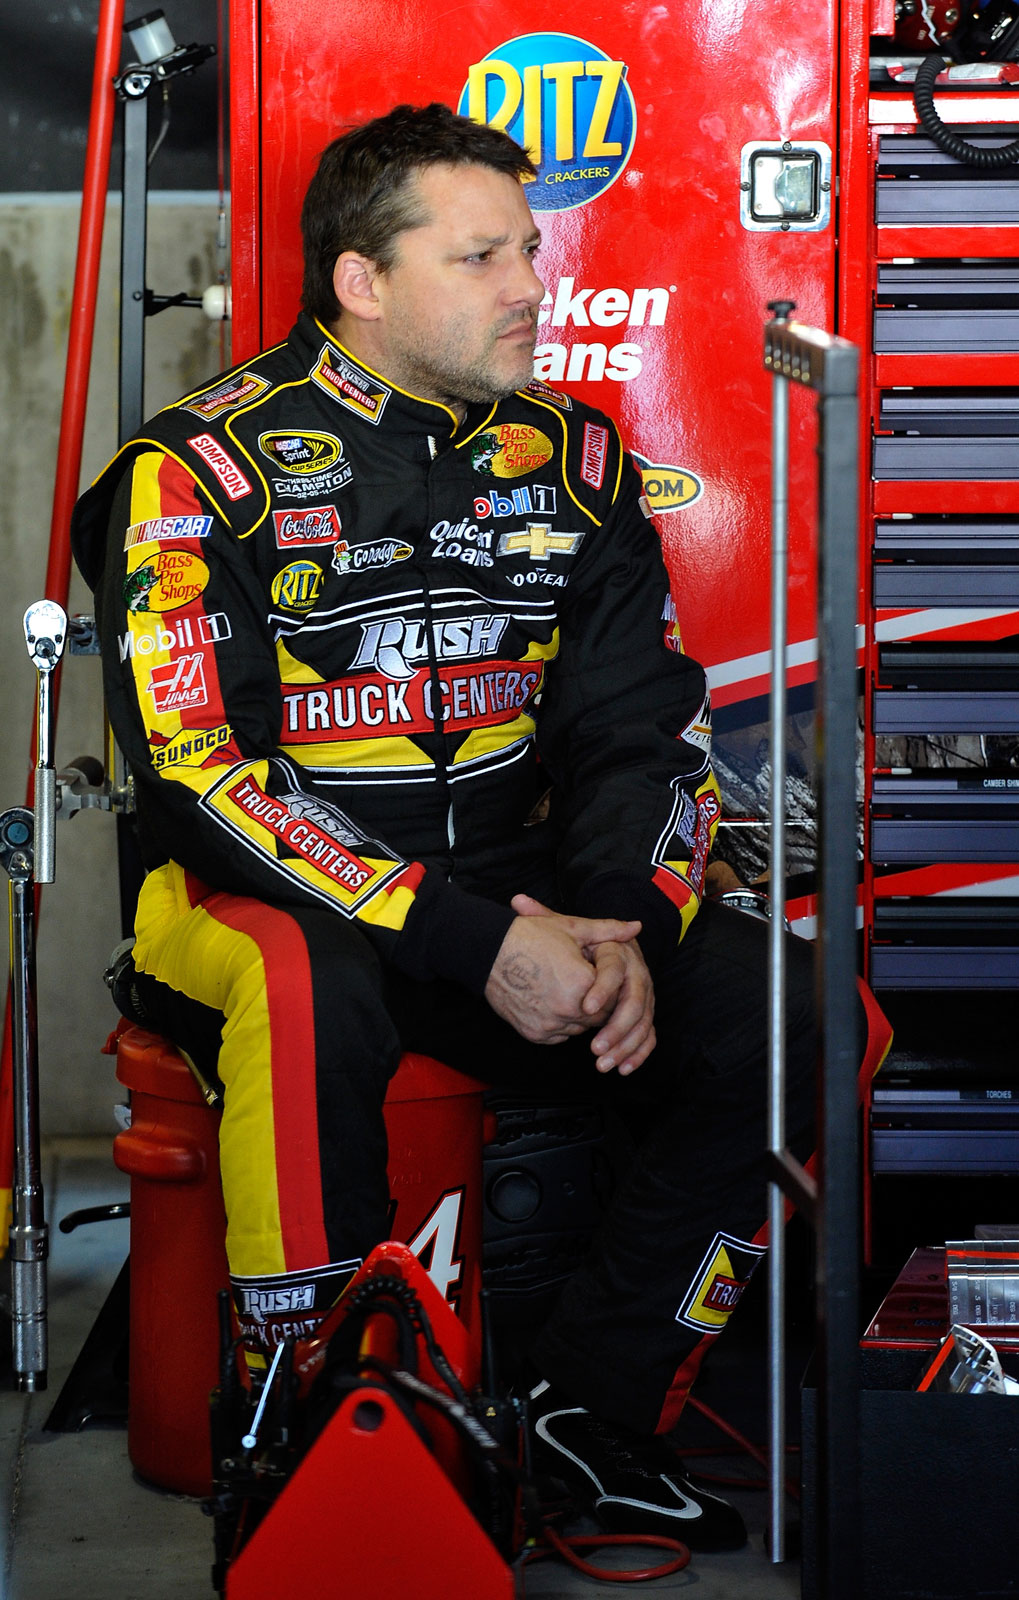 Tony-Stewart-Martinsville-NASCAR-April-2013